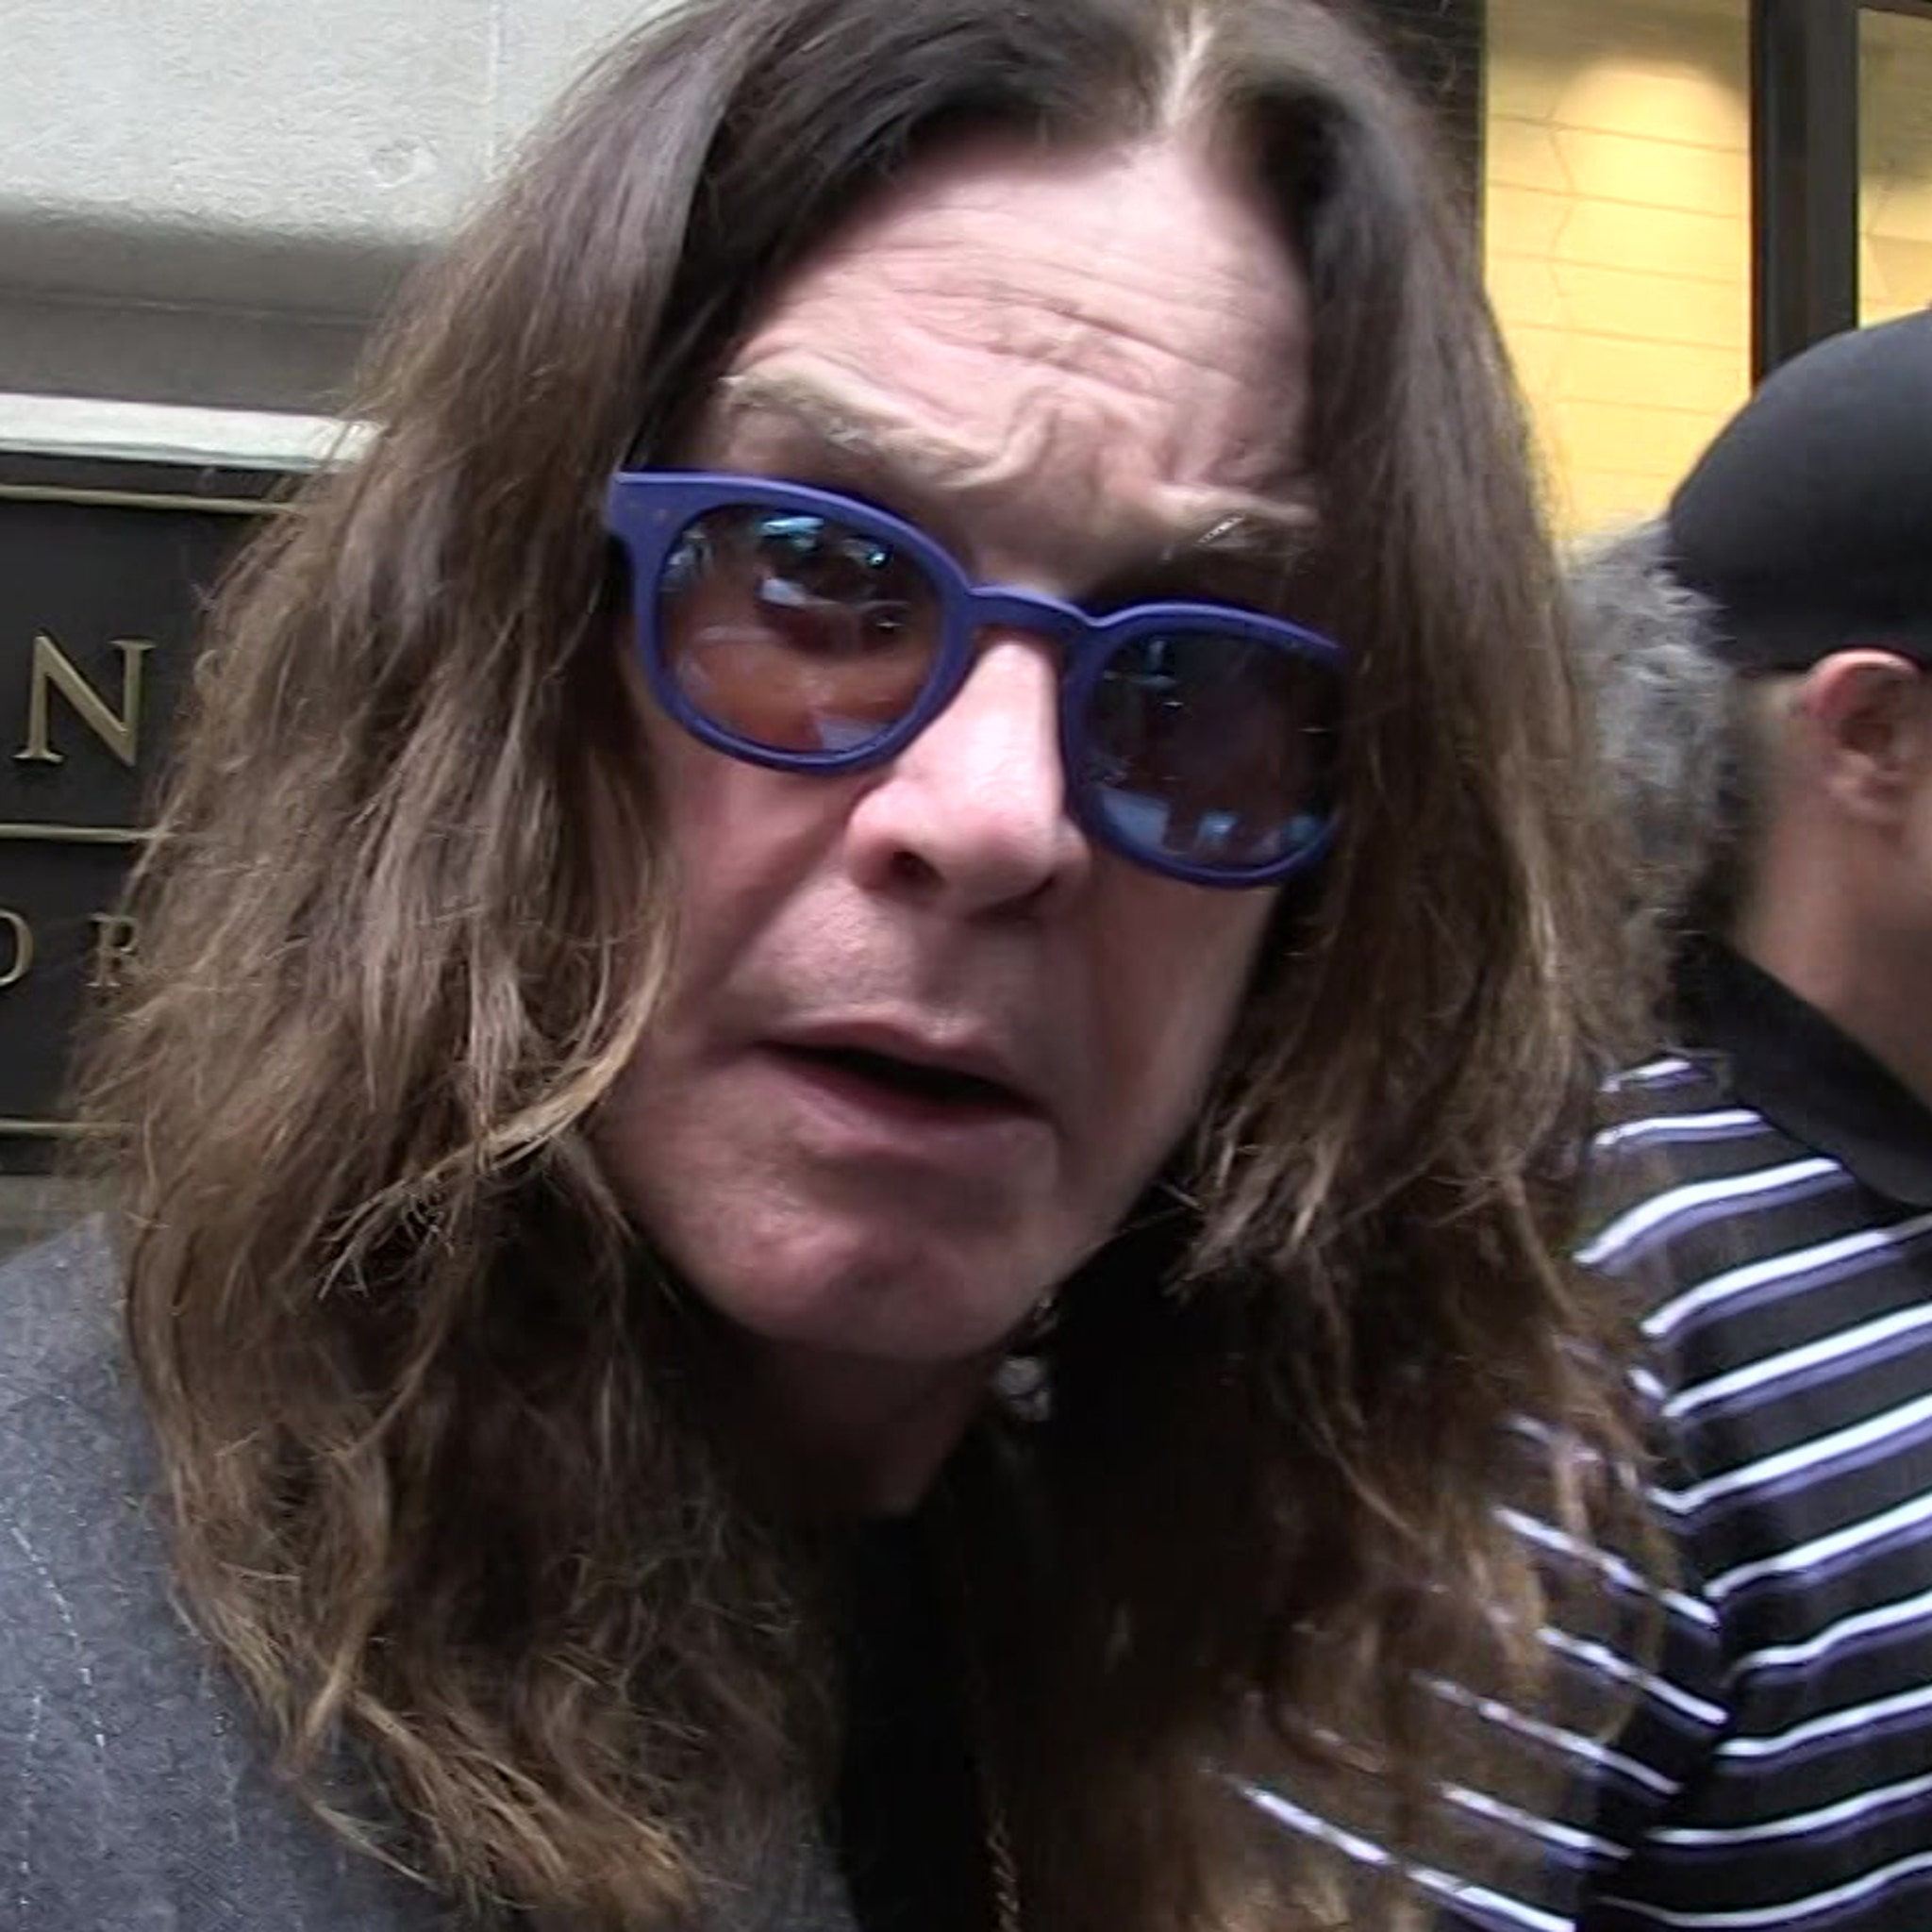 Ozzy Osbourne Offers $25k Reward to Recover Stolen Instruments, Gear